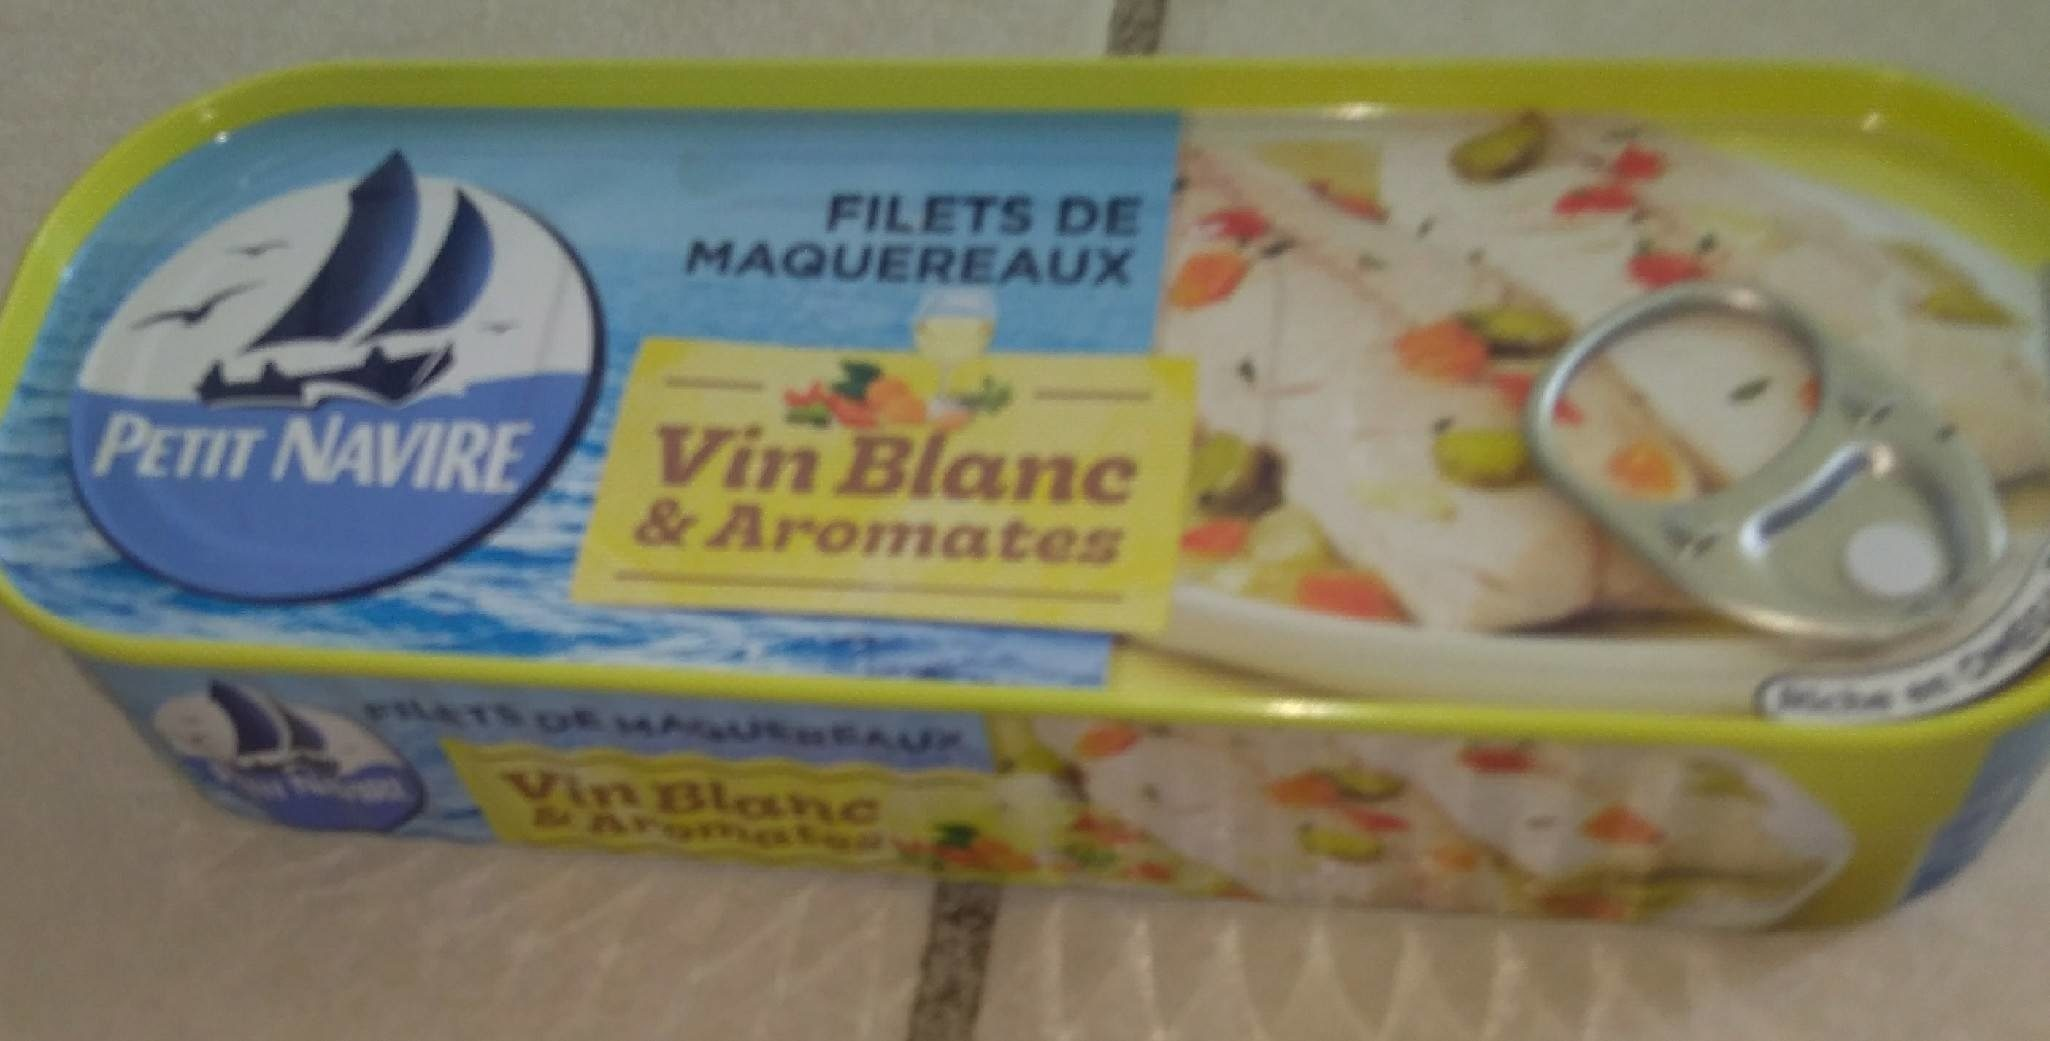 Filets de Maquereaux (au Vin Blanc... - Product